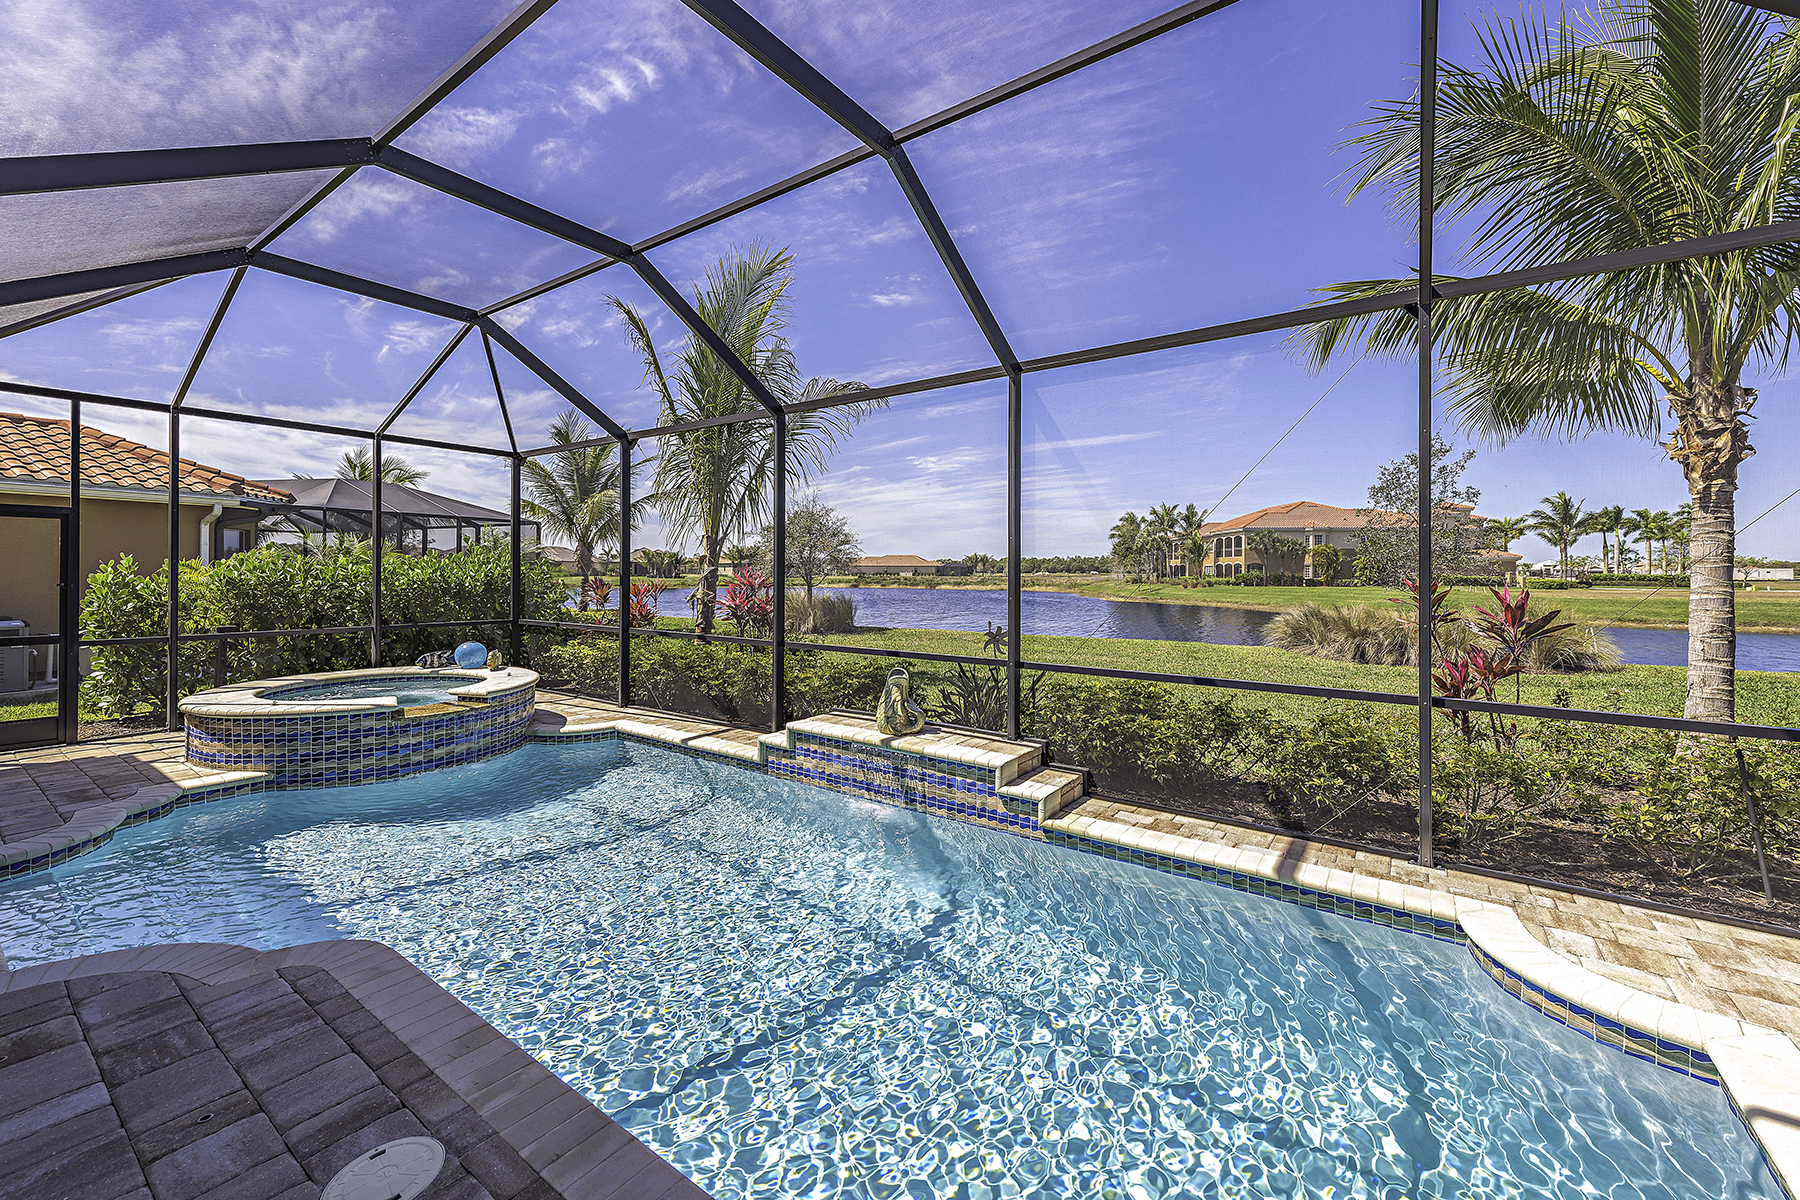 Casa Unifamiliar por un Venta en FIDDLERS CREEK 9193 Campanile Cir Naples, Florida, 34114 Estados Unidos